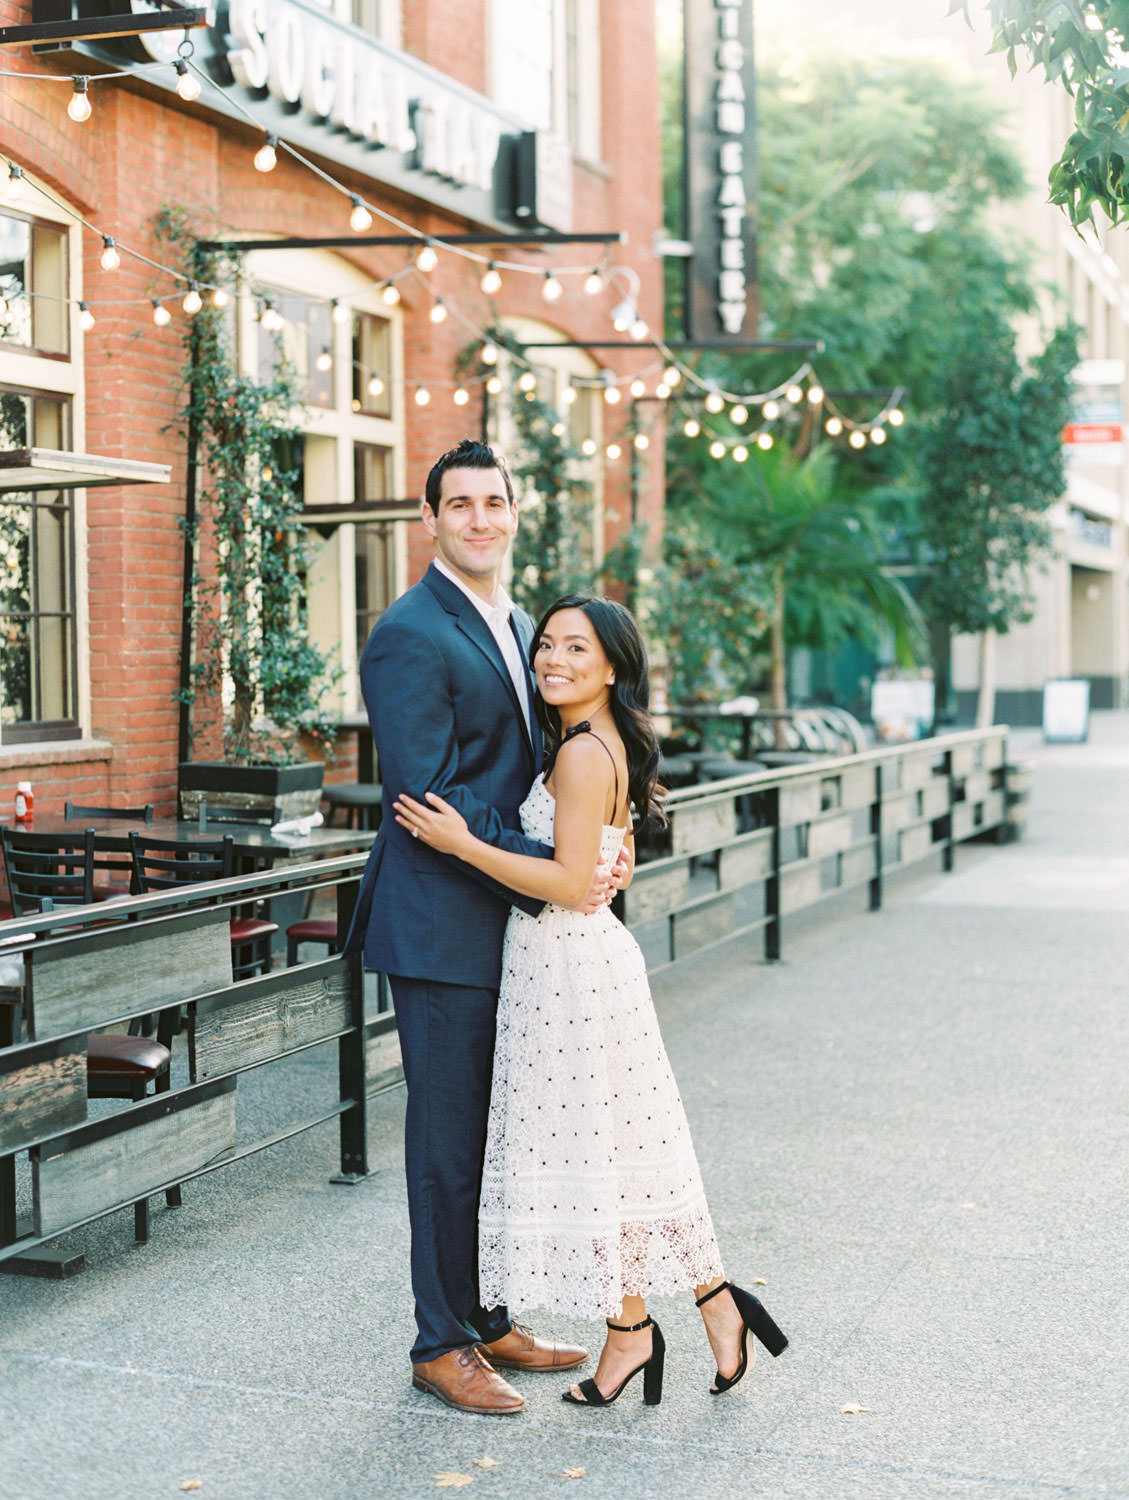 Groom and bride at a smiling at the camera. Bride in self portrait Ivory Hibiscus Floral Guipure Midi Dress and groom in navy suit. Downtown San Diego engagement photos on film by Cavin Elizabeth Photography